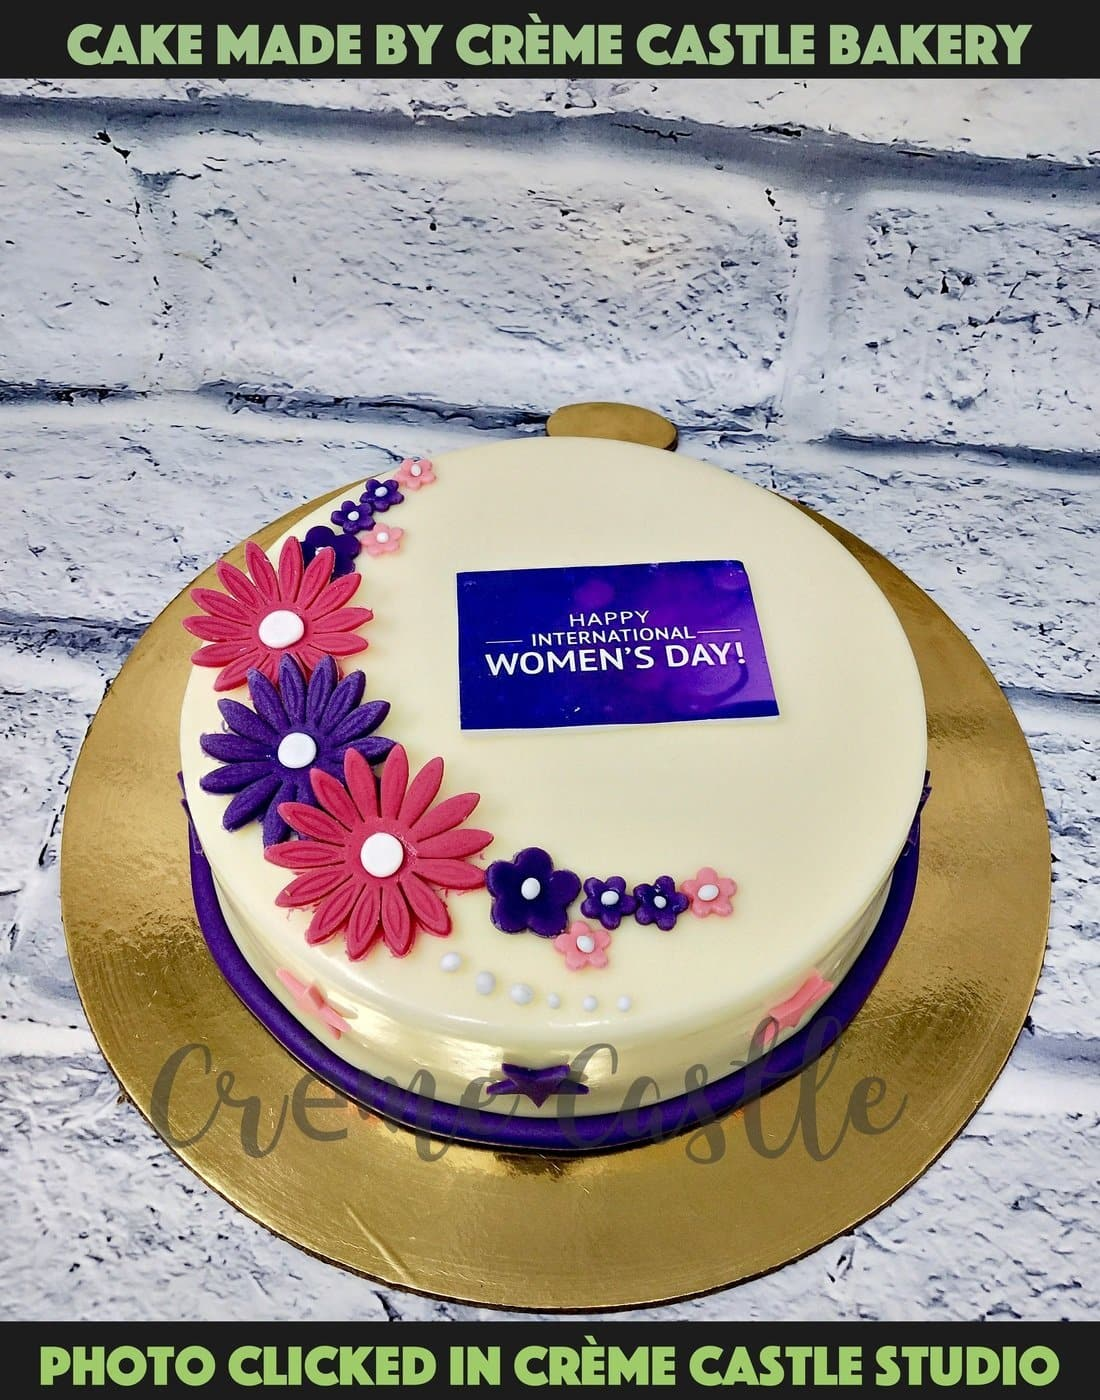 A cake for women's day in purple and pink theme with logo of women's day on top and similar colored flowers decorated all over cake